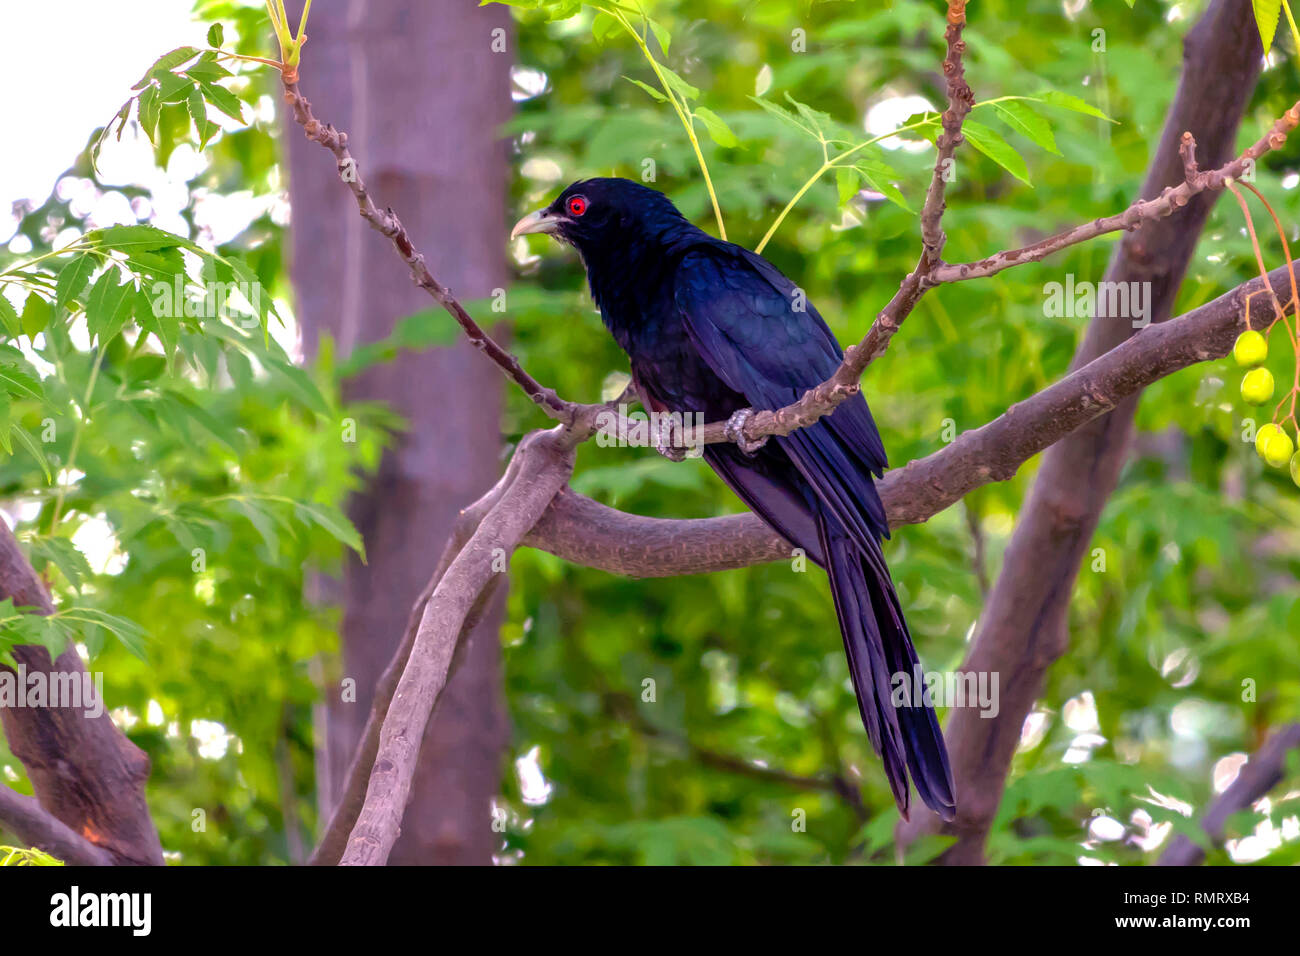 The Asian Koel sitting on a tree outside my home. this dark shiny black colored is a male Koel. It is alsoknown as song birds for it call style. - Stock Image